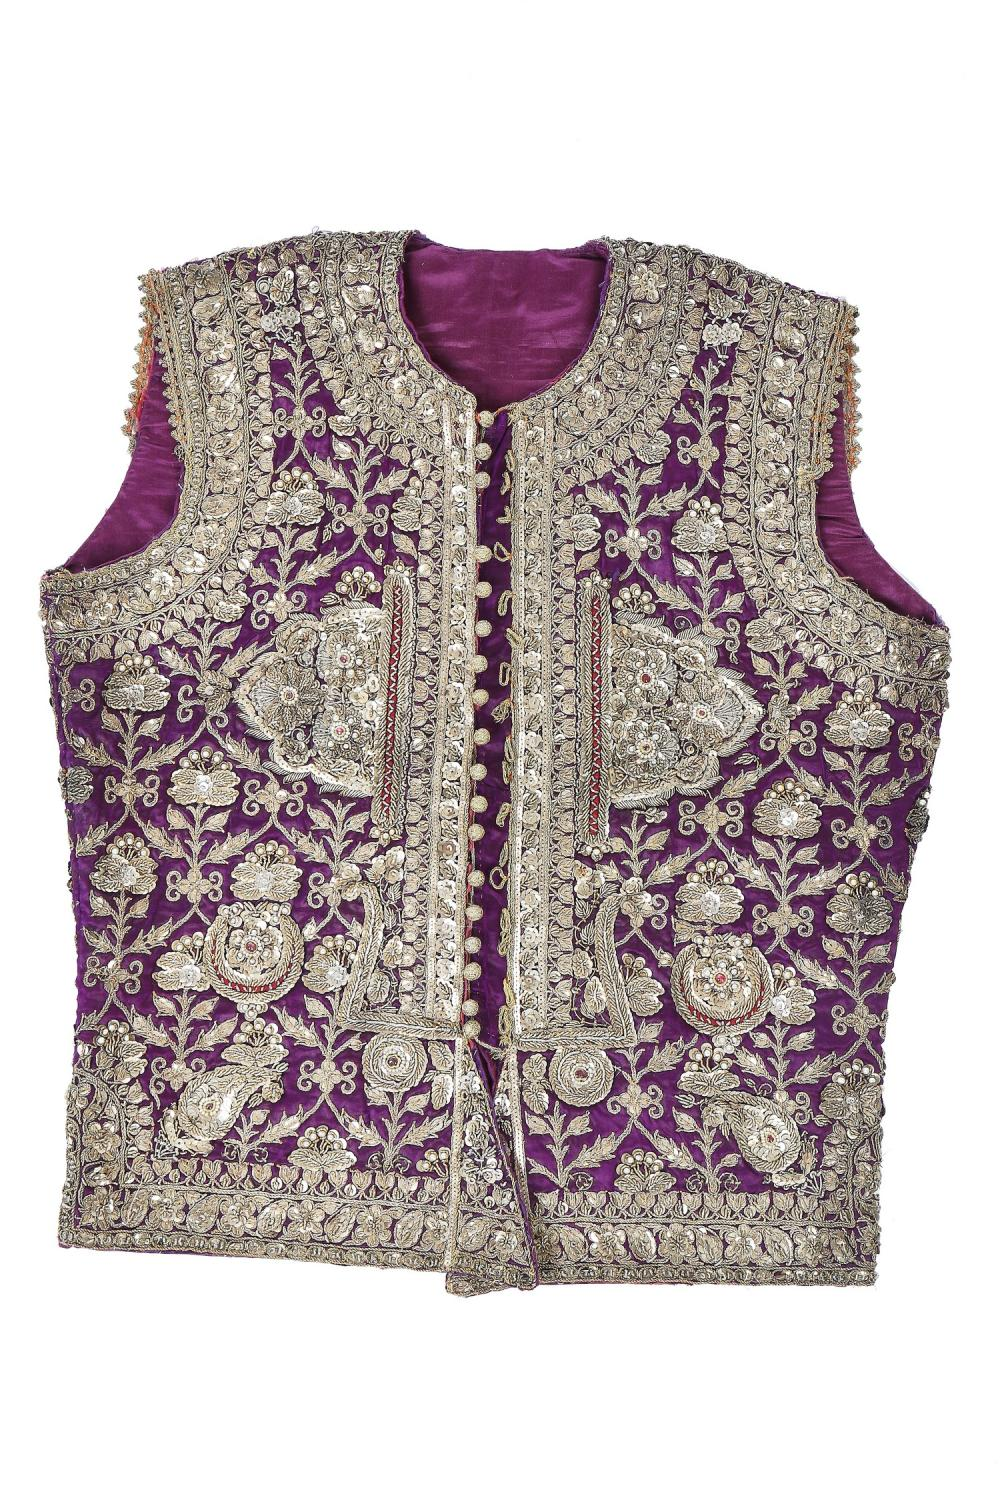 A boy's elaborately embroidered and bejewelled purple satin waistcoat, Indian, late 19th century